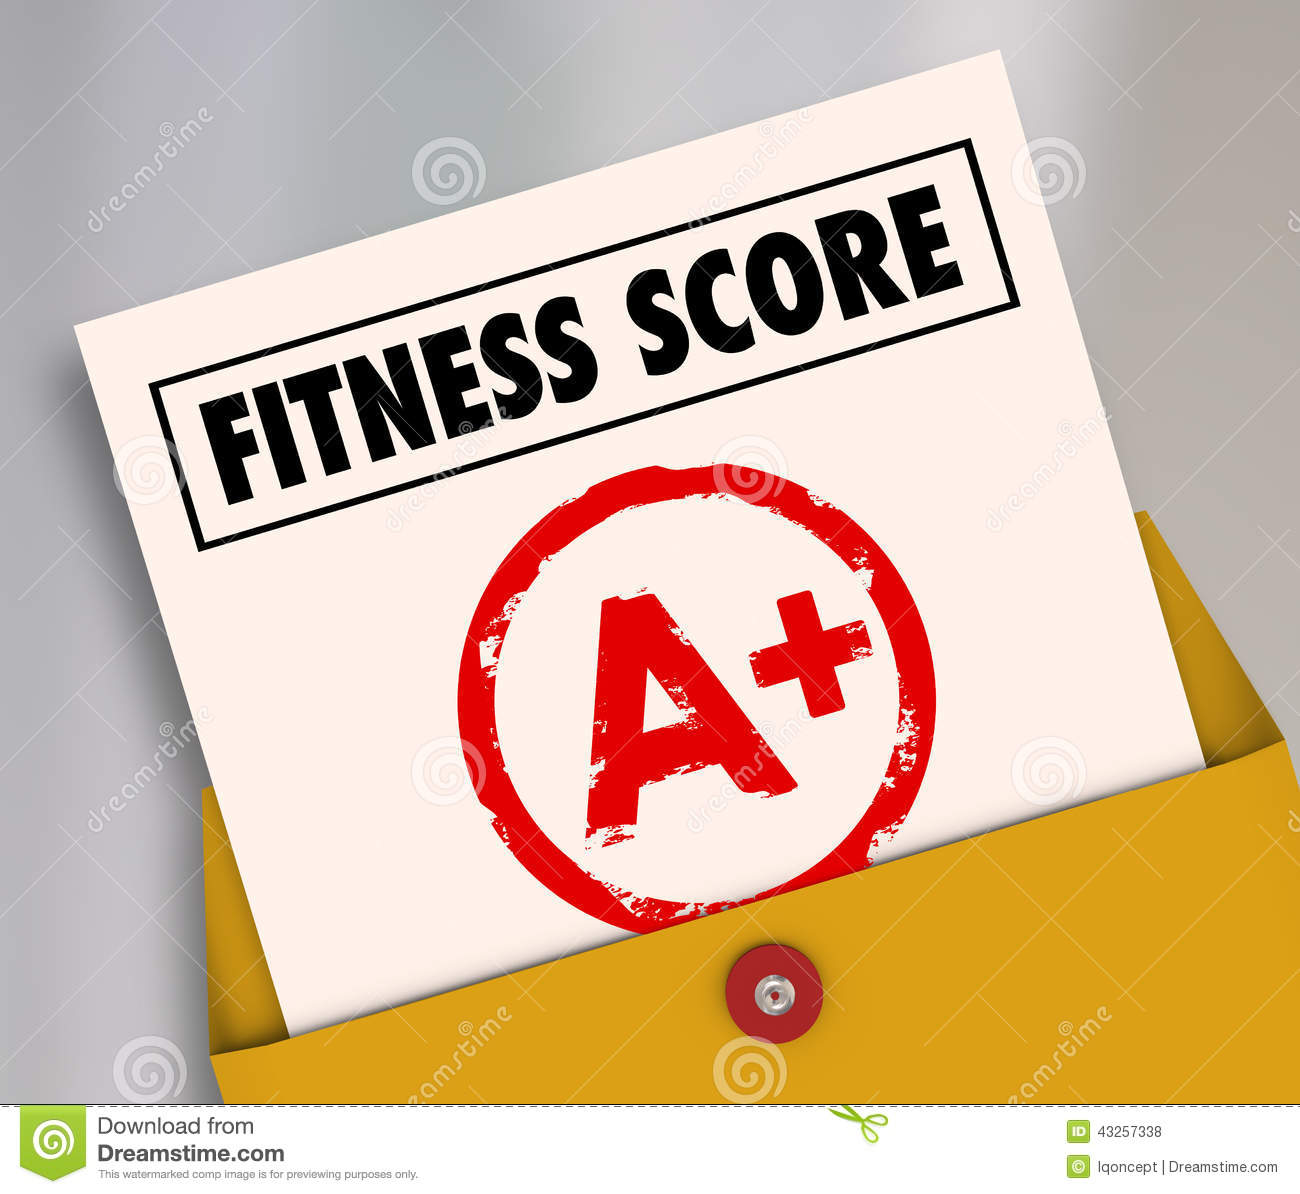 Physical Strength: Fitness Score A+ Plus Top Grade Rating Review Evaluation